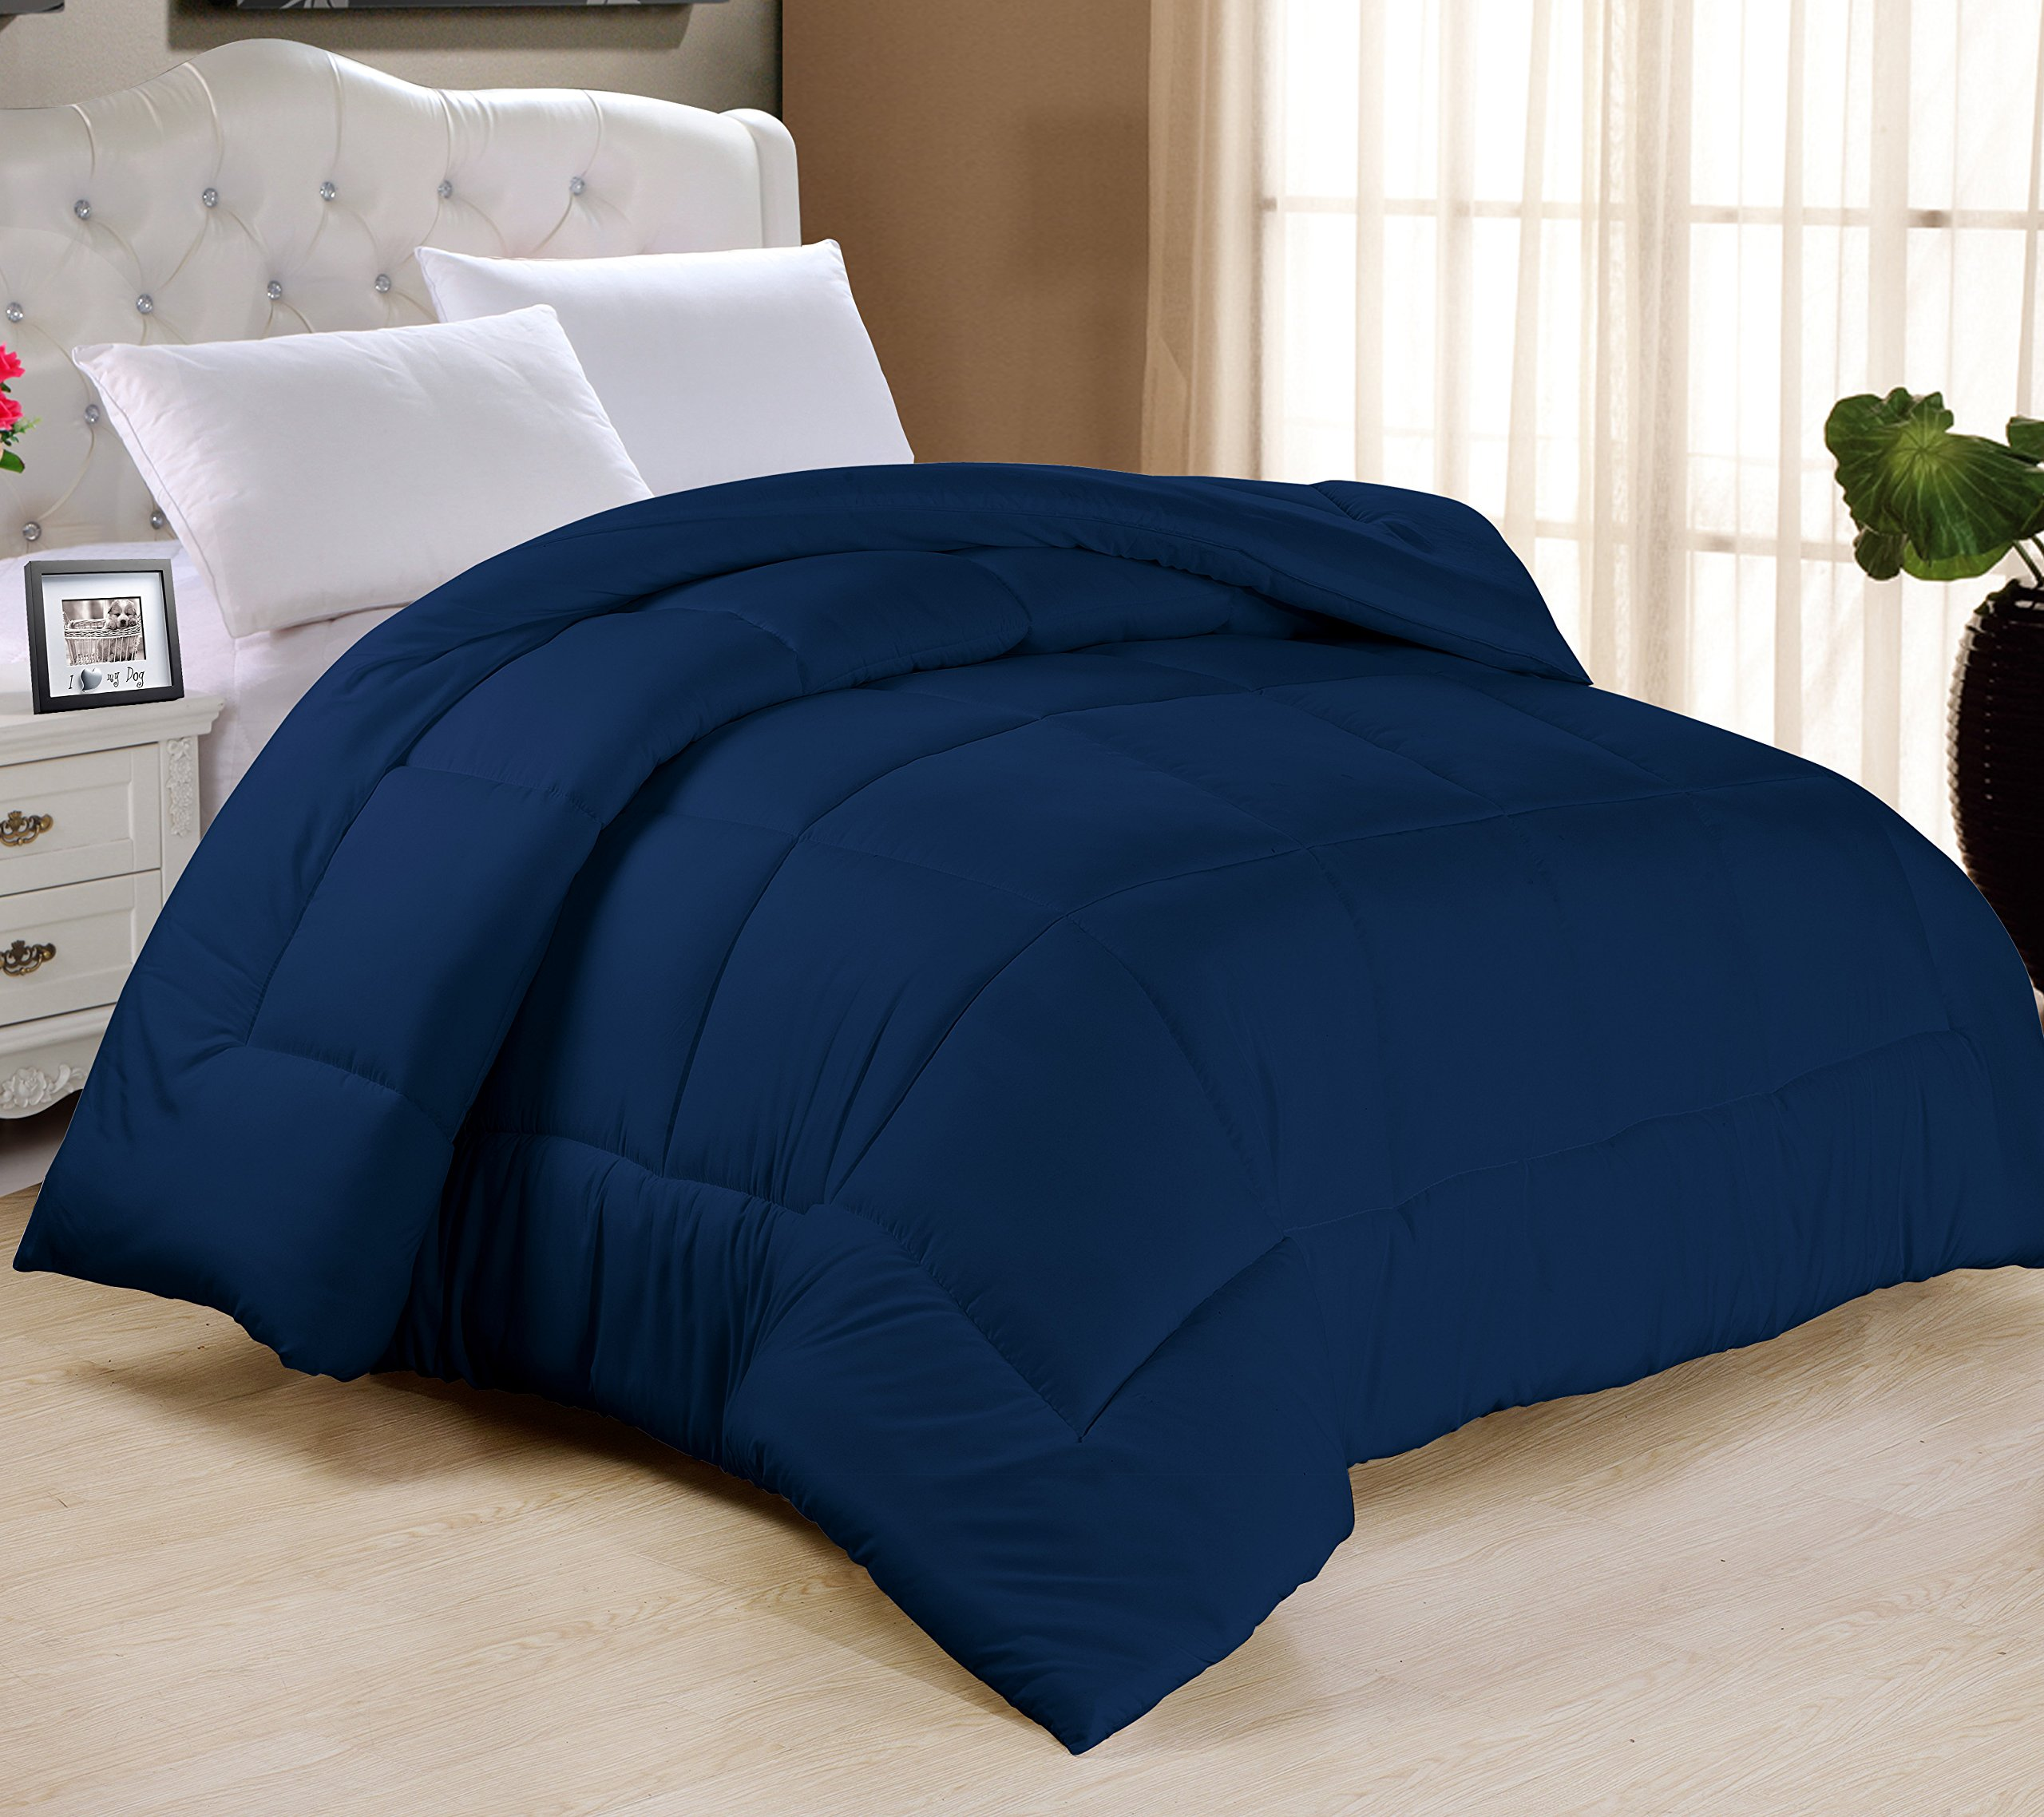 Swift Home All-Season Extra Soft Luxurious Classic Light-Warmth Goose Down-Alternative Comforter, Queen 90'' x 90'', Navy by Swift Home (Image #1)